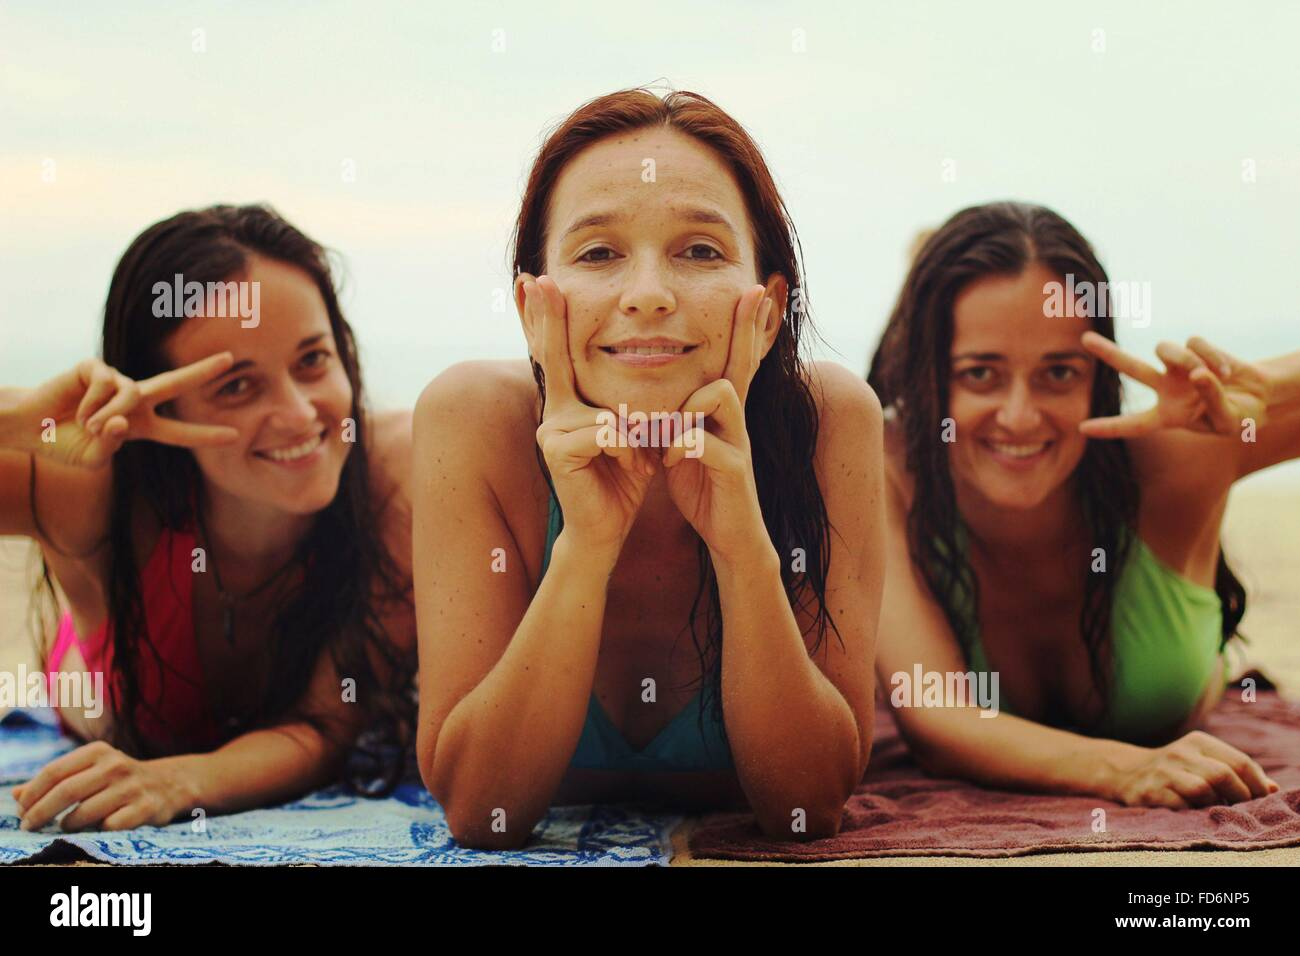 Portrait Of Happy Friends Making Peace Sign On Beach Photo Stock